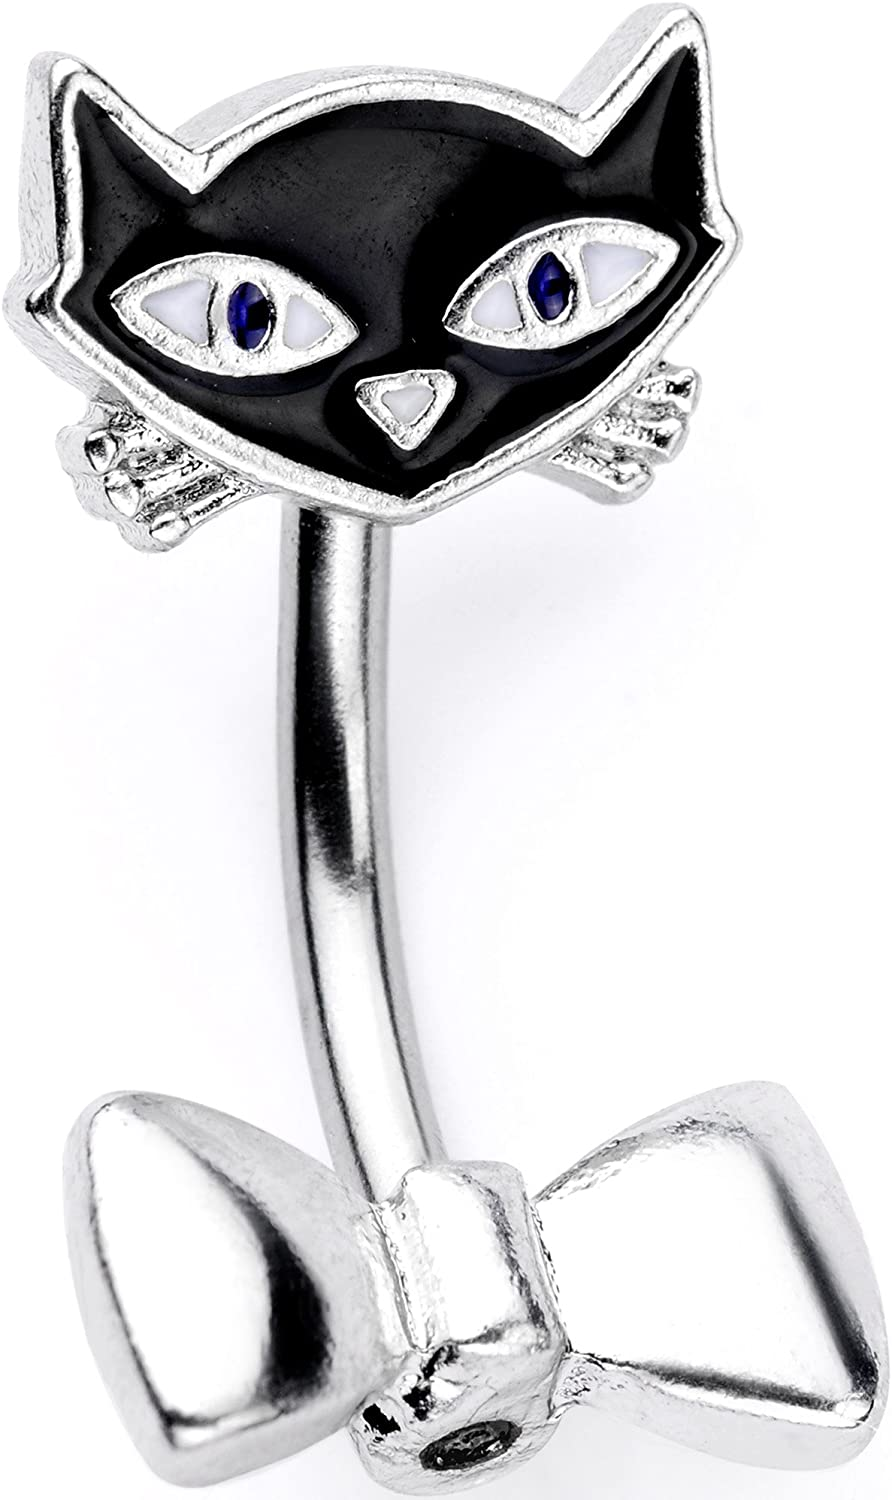 Body Candy 14G 316L Stainless Steel Navel Ring Piercing Black Cat Double Mount Belly Button Ring